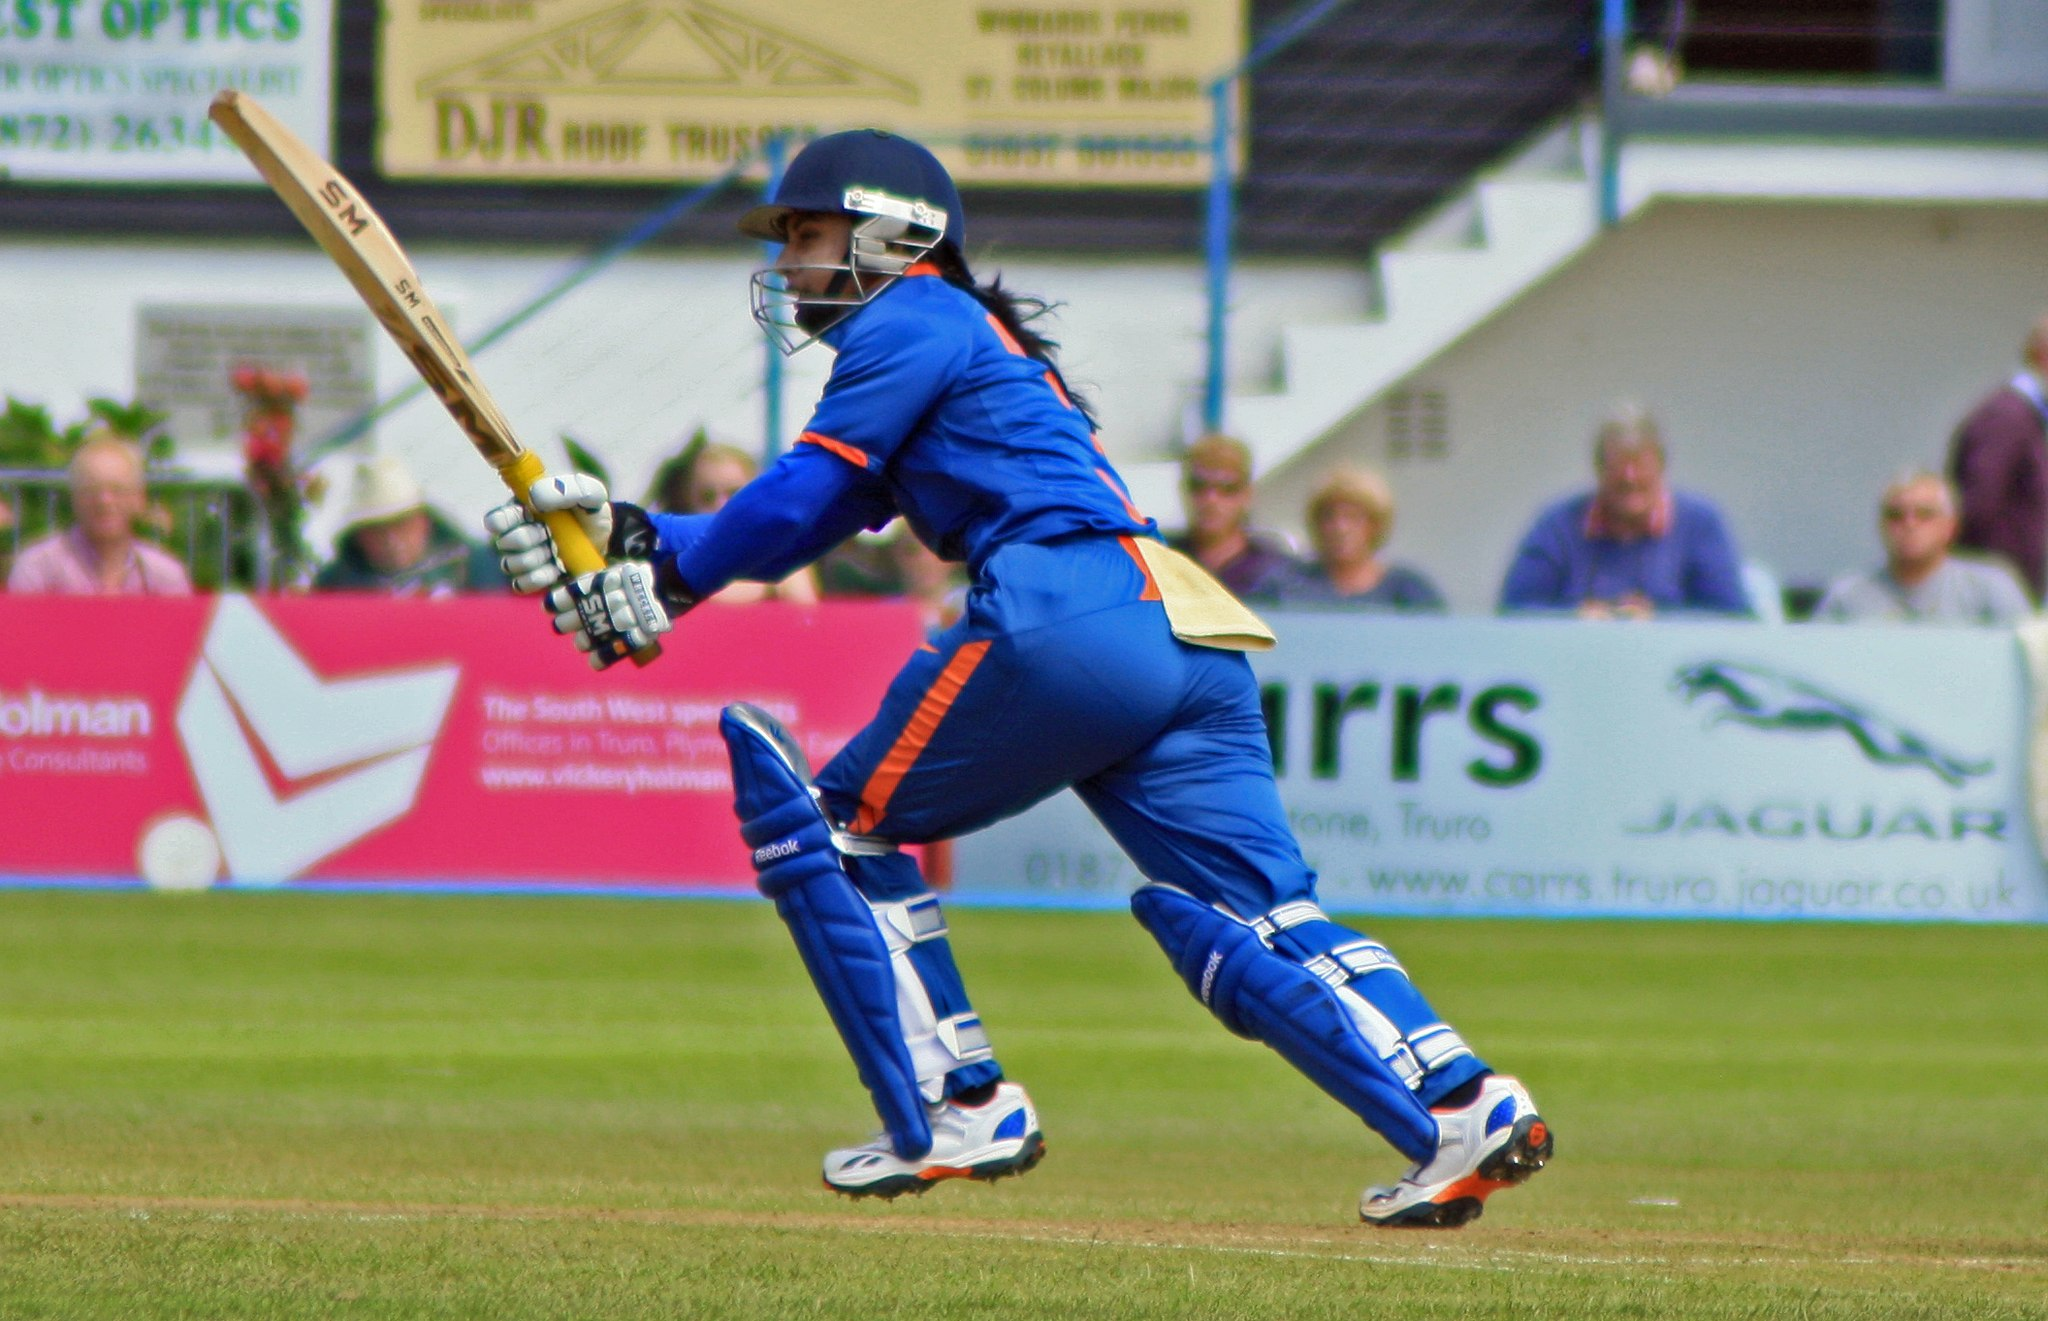 Mithali Raj batting for India women against England in Truro in 2012